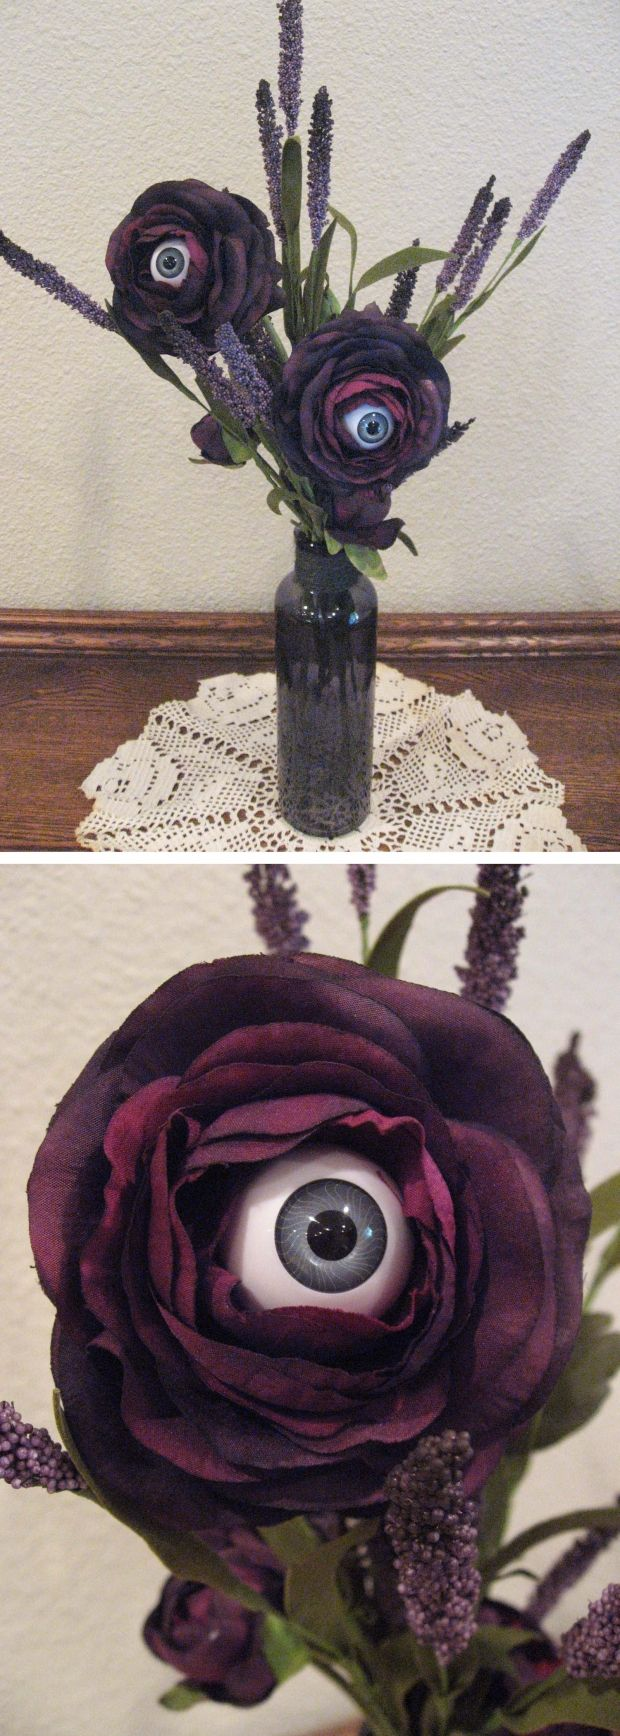 diy halloween decorations | *sings* this is halloween! this is